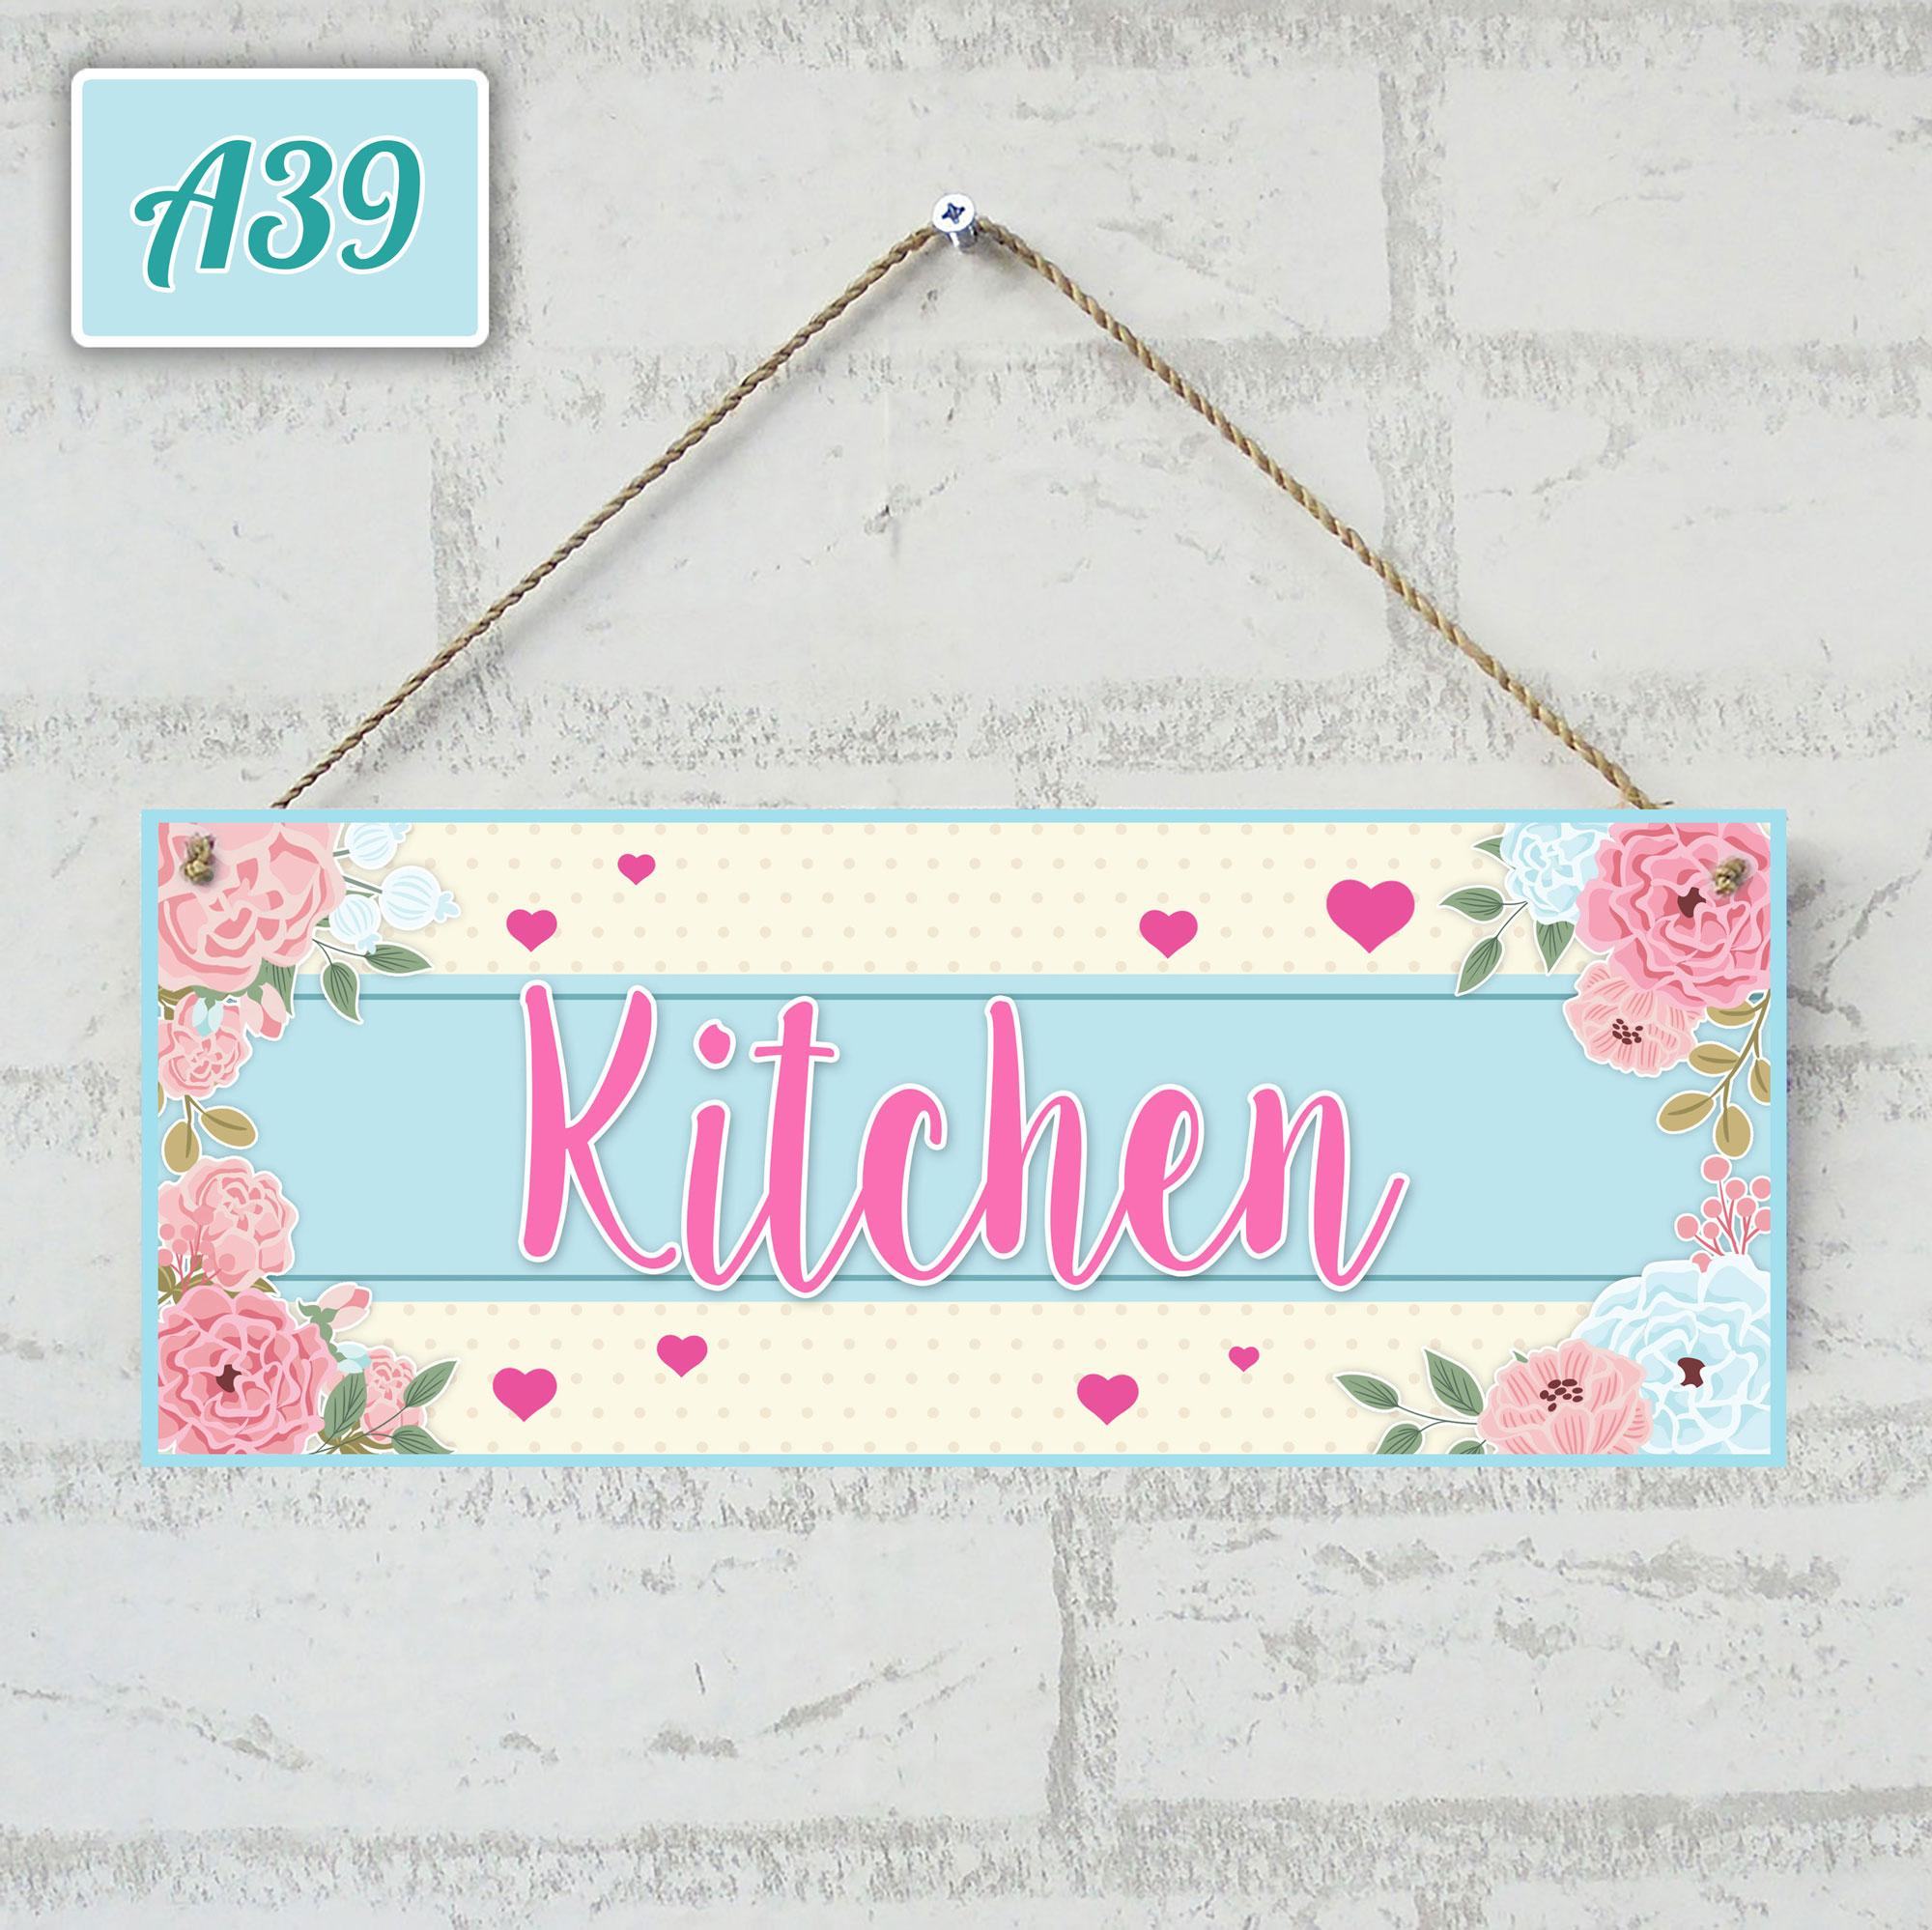 Buy Sell Cheapest A39 Home Decor Best Quality Product Deals Frame Photo Gantung Animals Lucu 3 Inch Pajangan Hiasan Dinding Susun Kitchen 1